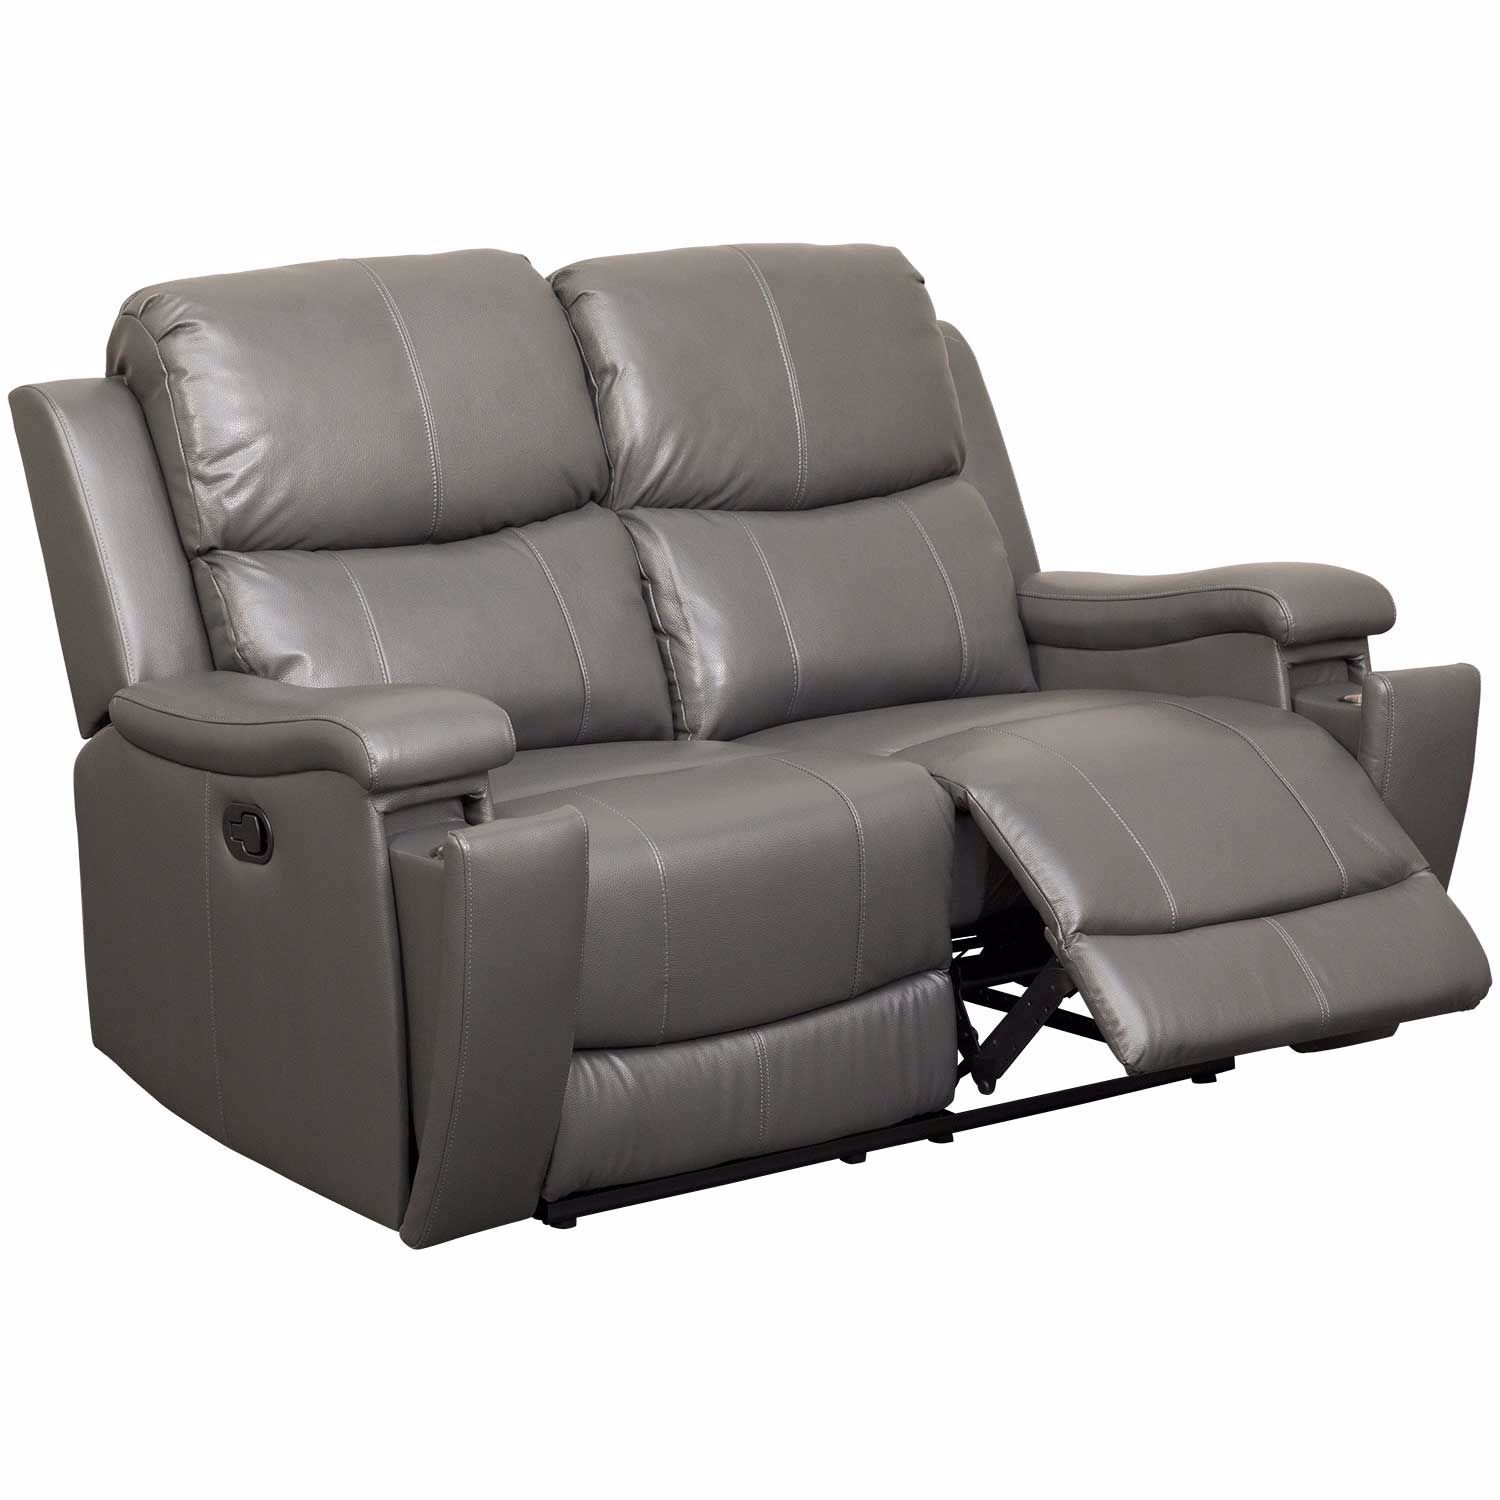 Picture of Dayton Leather Reclining Loveseat